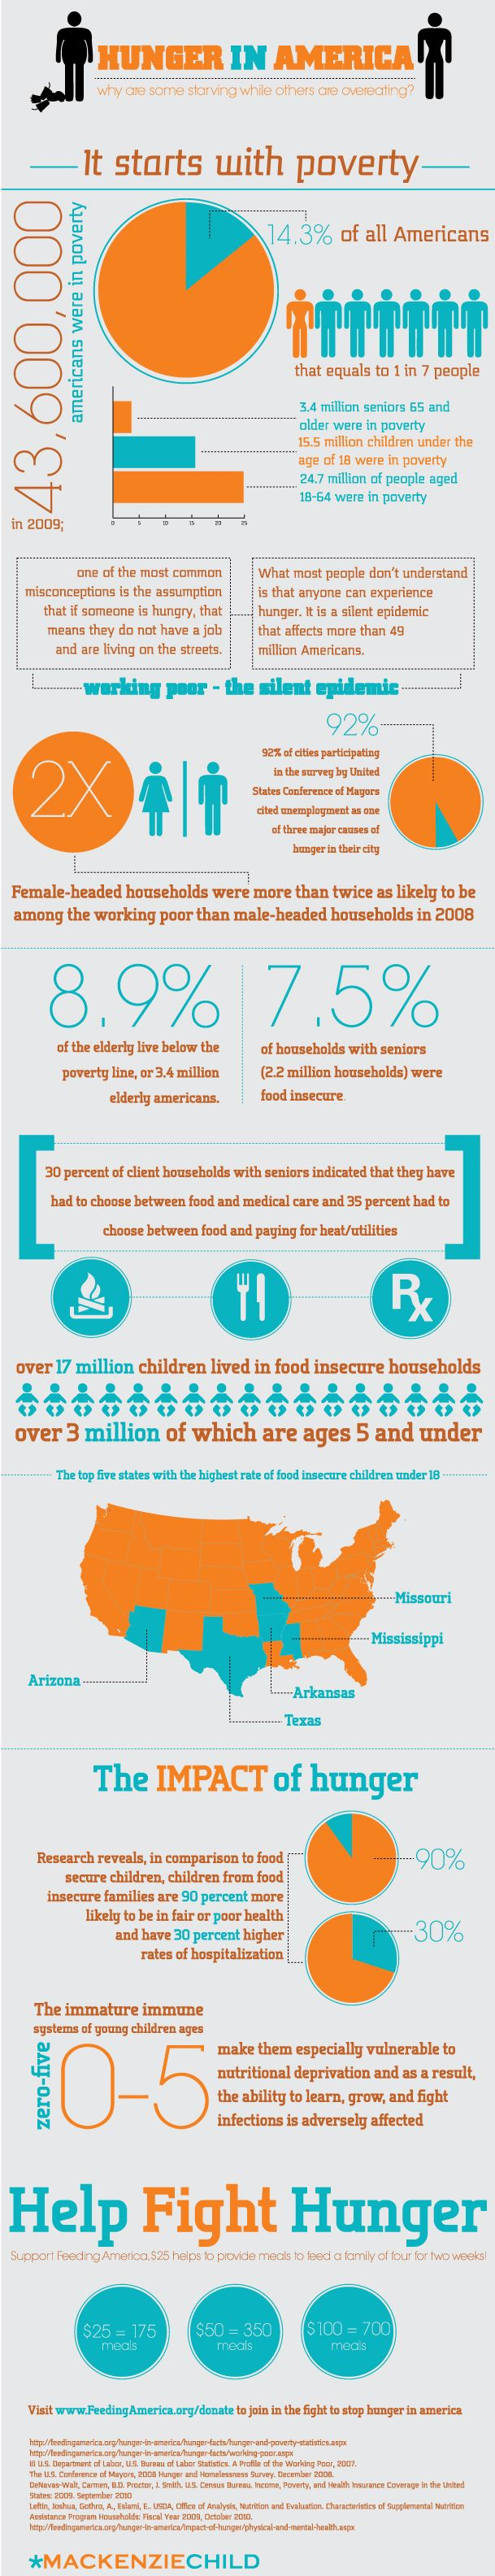 Hunger Starts with Poverty: Hunger Start, Hunger Action, Hunger Infographic, Child Hunger, America Bi, Hunger In America Infographic, Child Infographic, Experiment Hunger, Hunger Facts